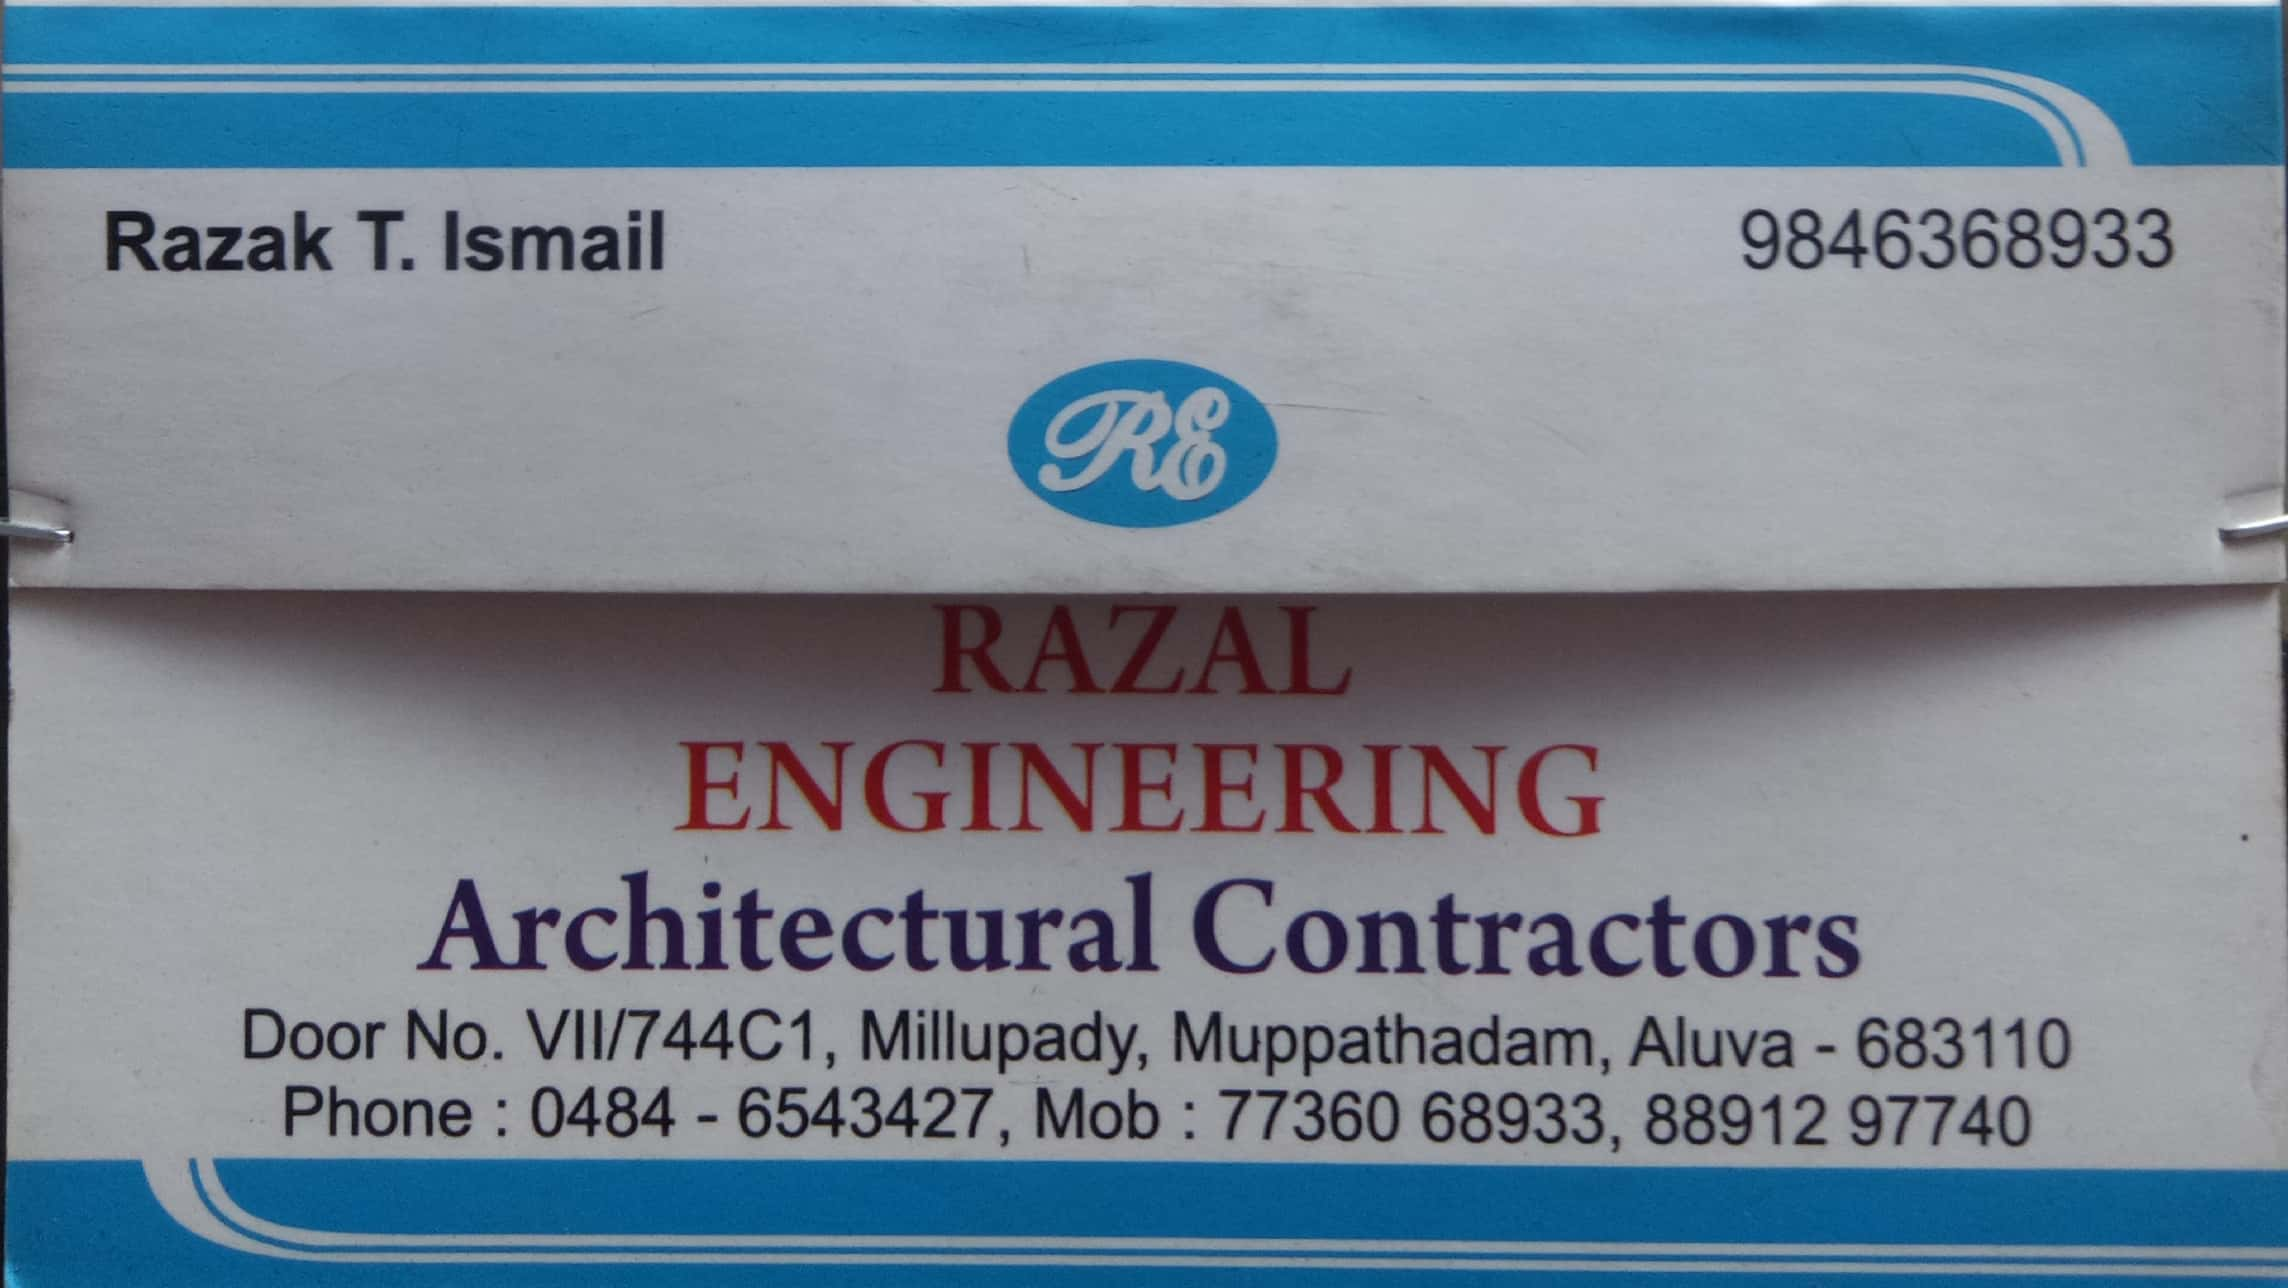 RAZAL ENGINEERING, CONTRACTOR,  service in Aluva, Ernakulam